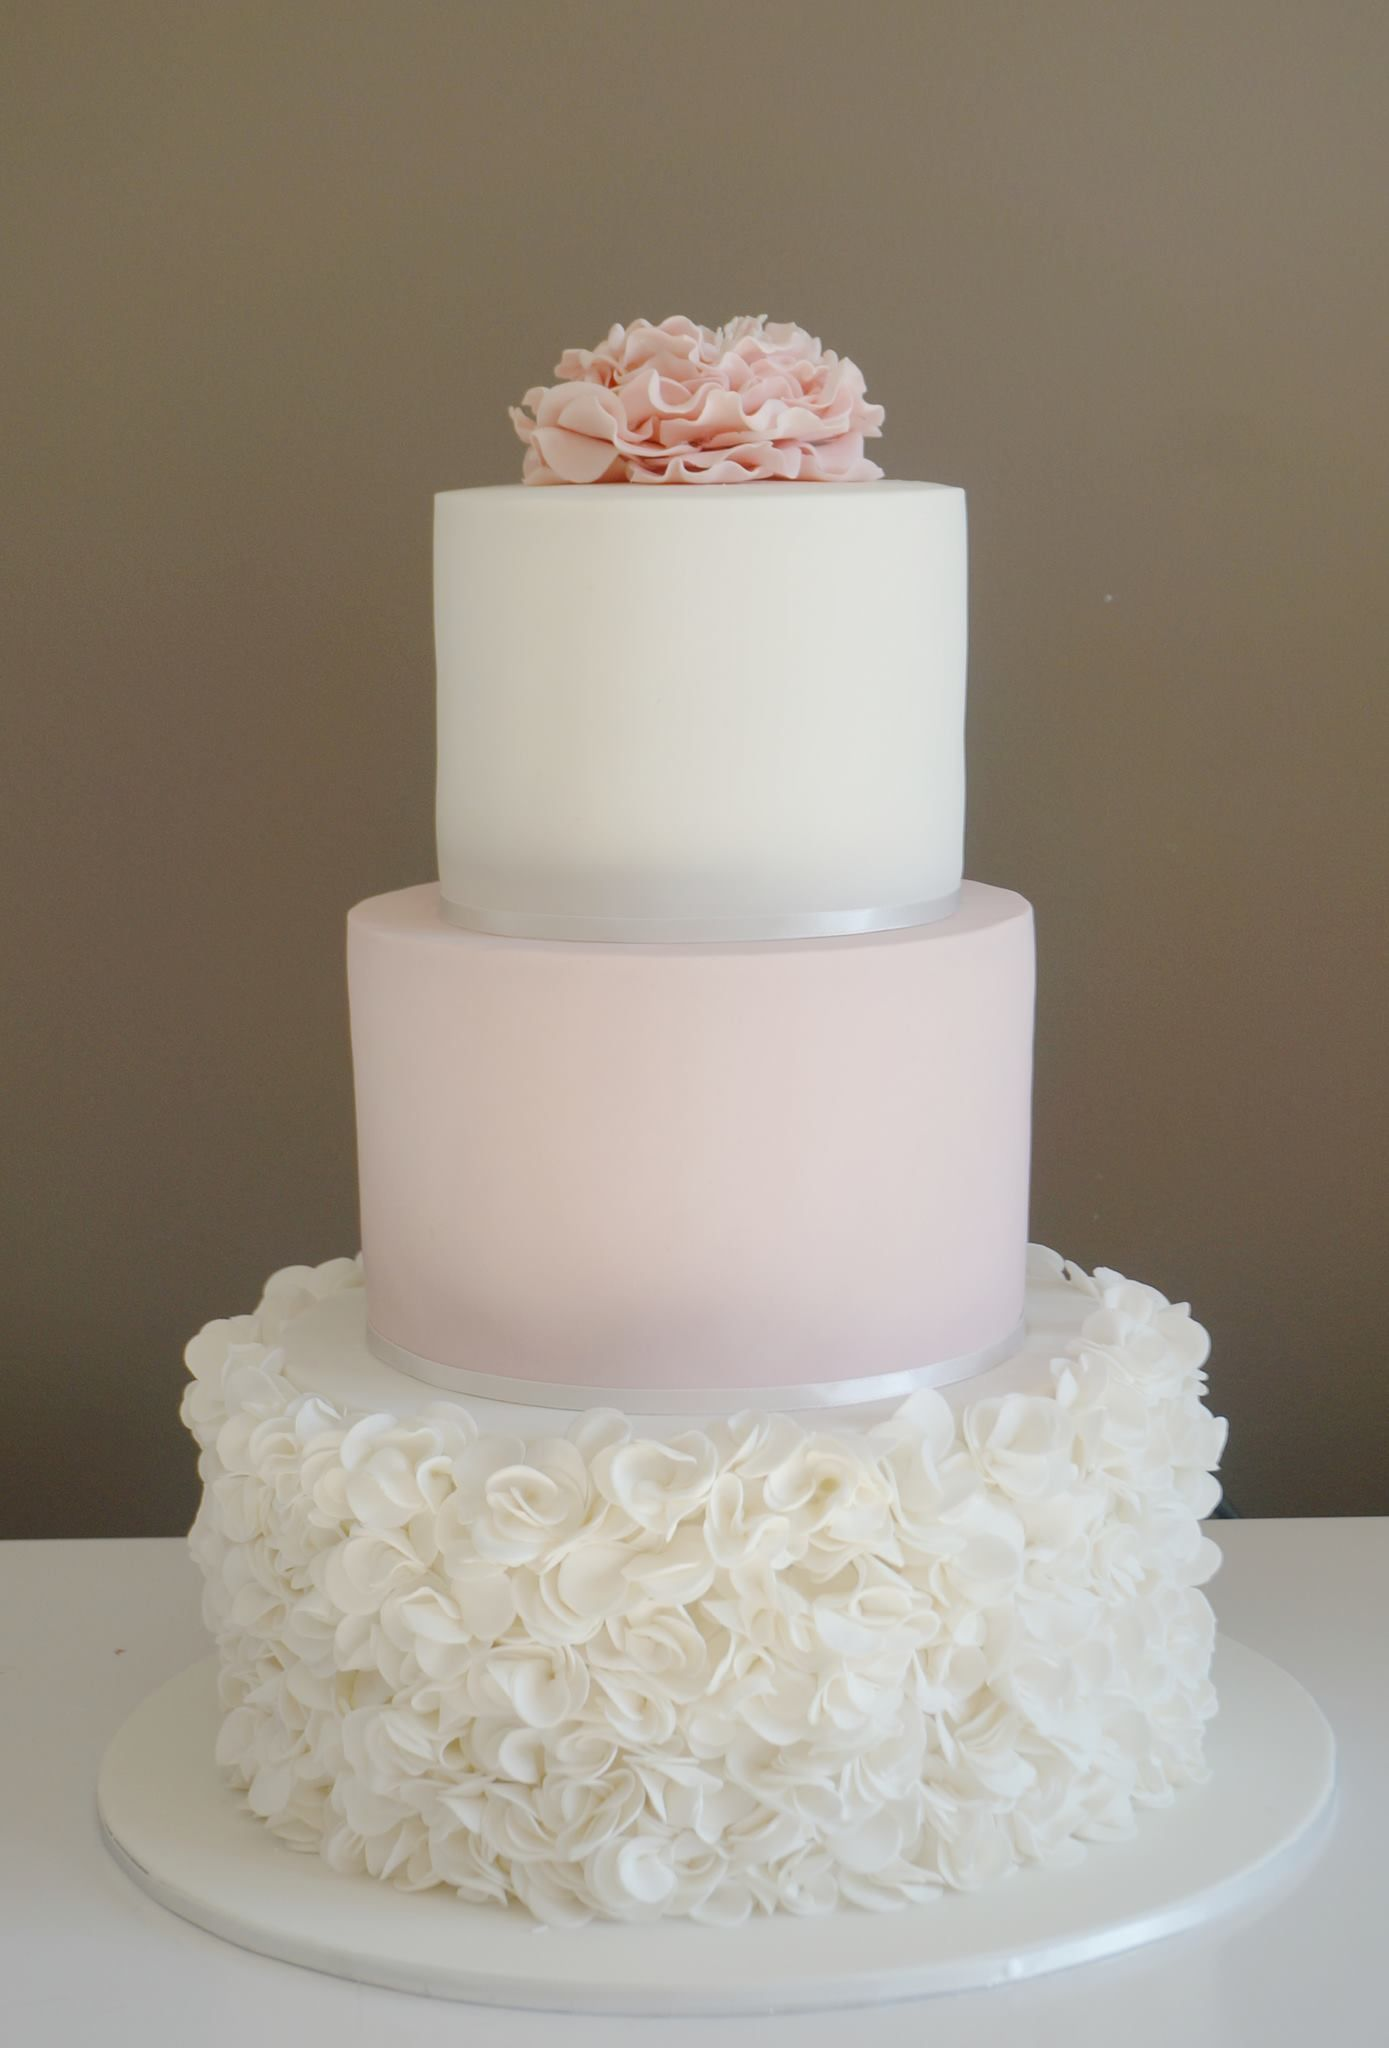 Pink And White Wedding Cake Very Pretty 3 Tier With Ruffle Rose Bottom